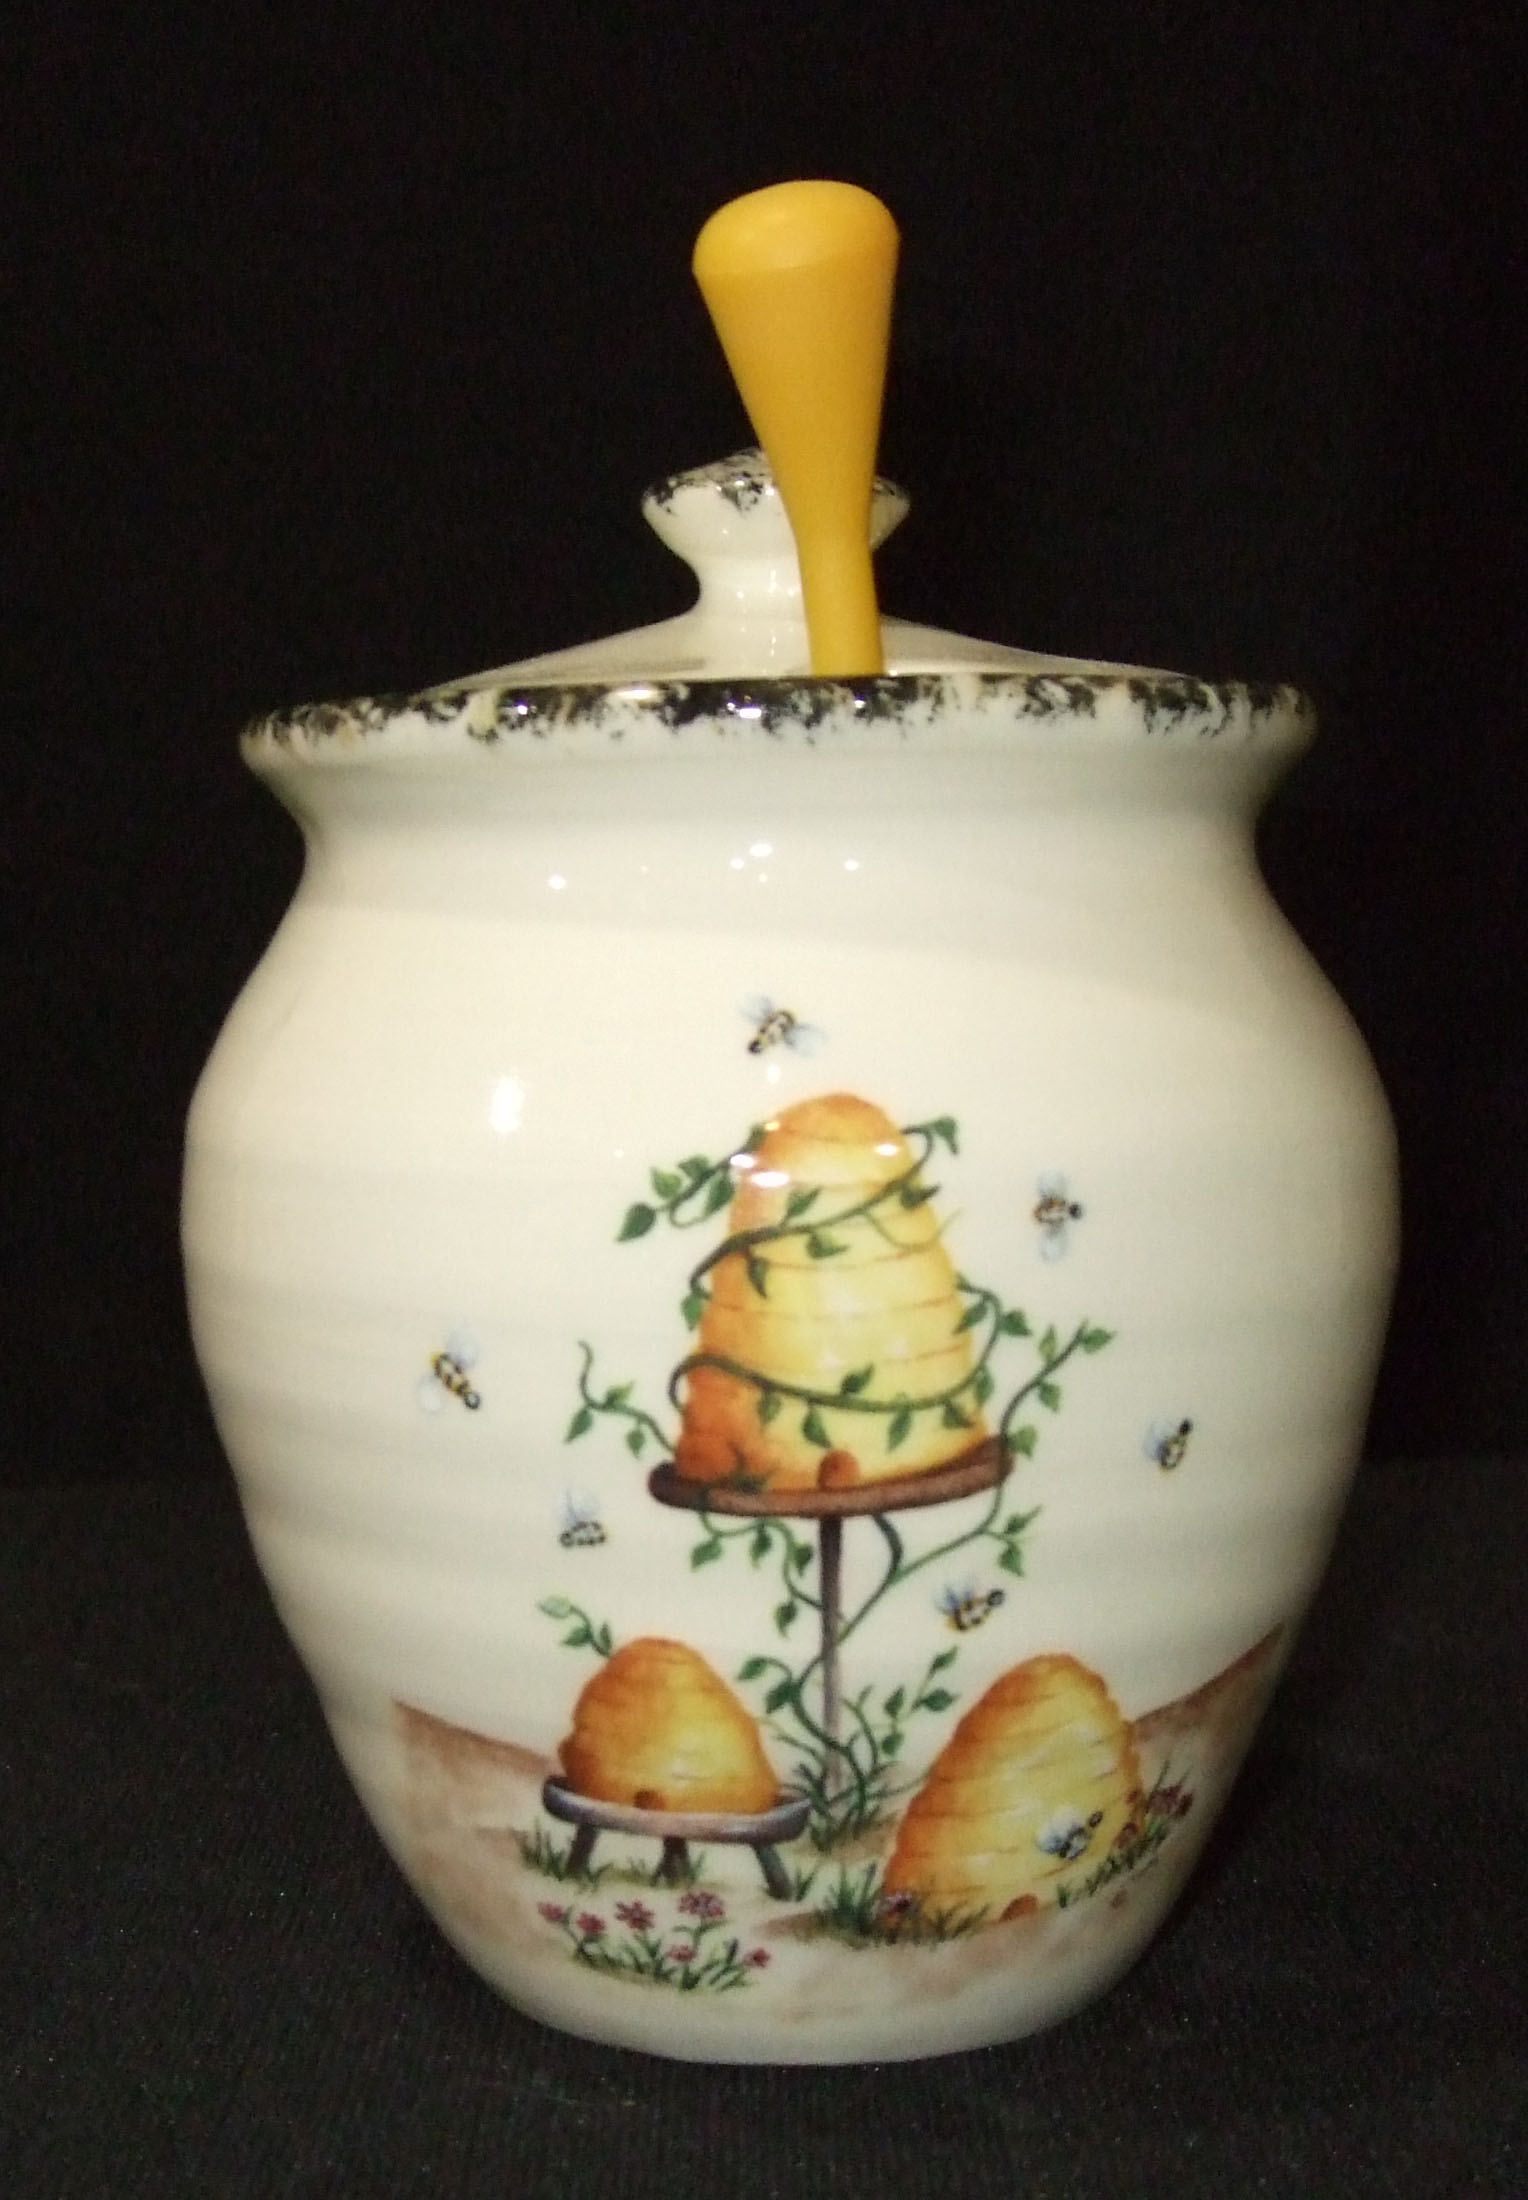 honey pot, honey keeper, jelly jar, pottery, ceramics